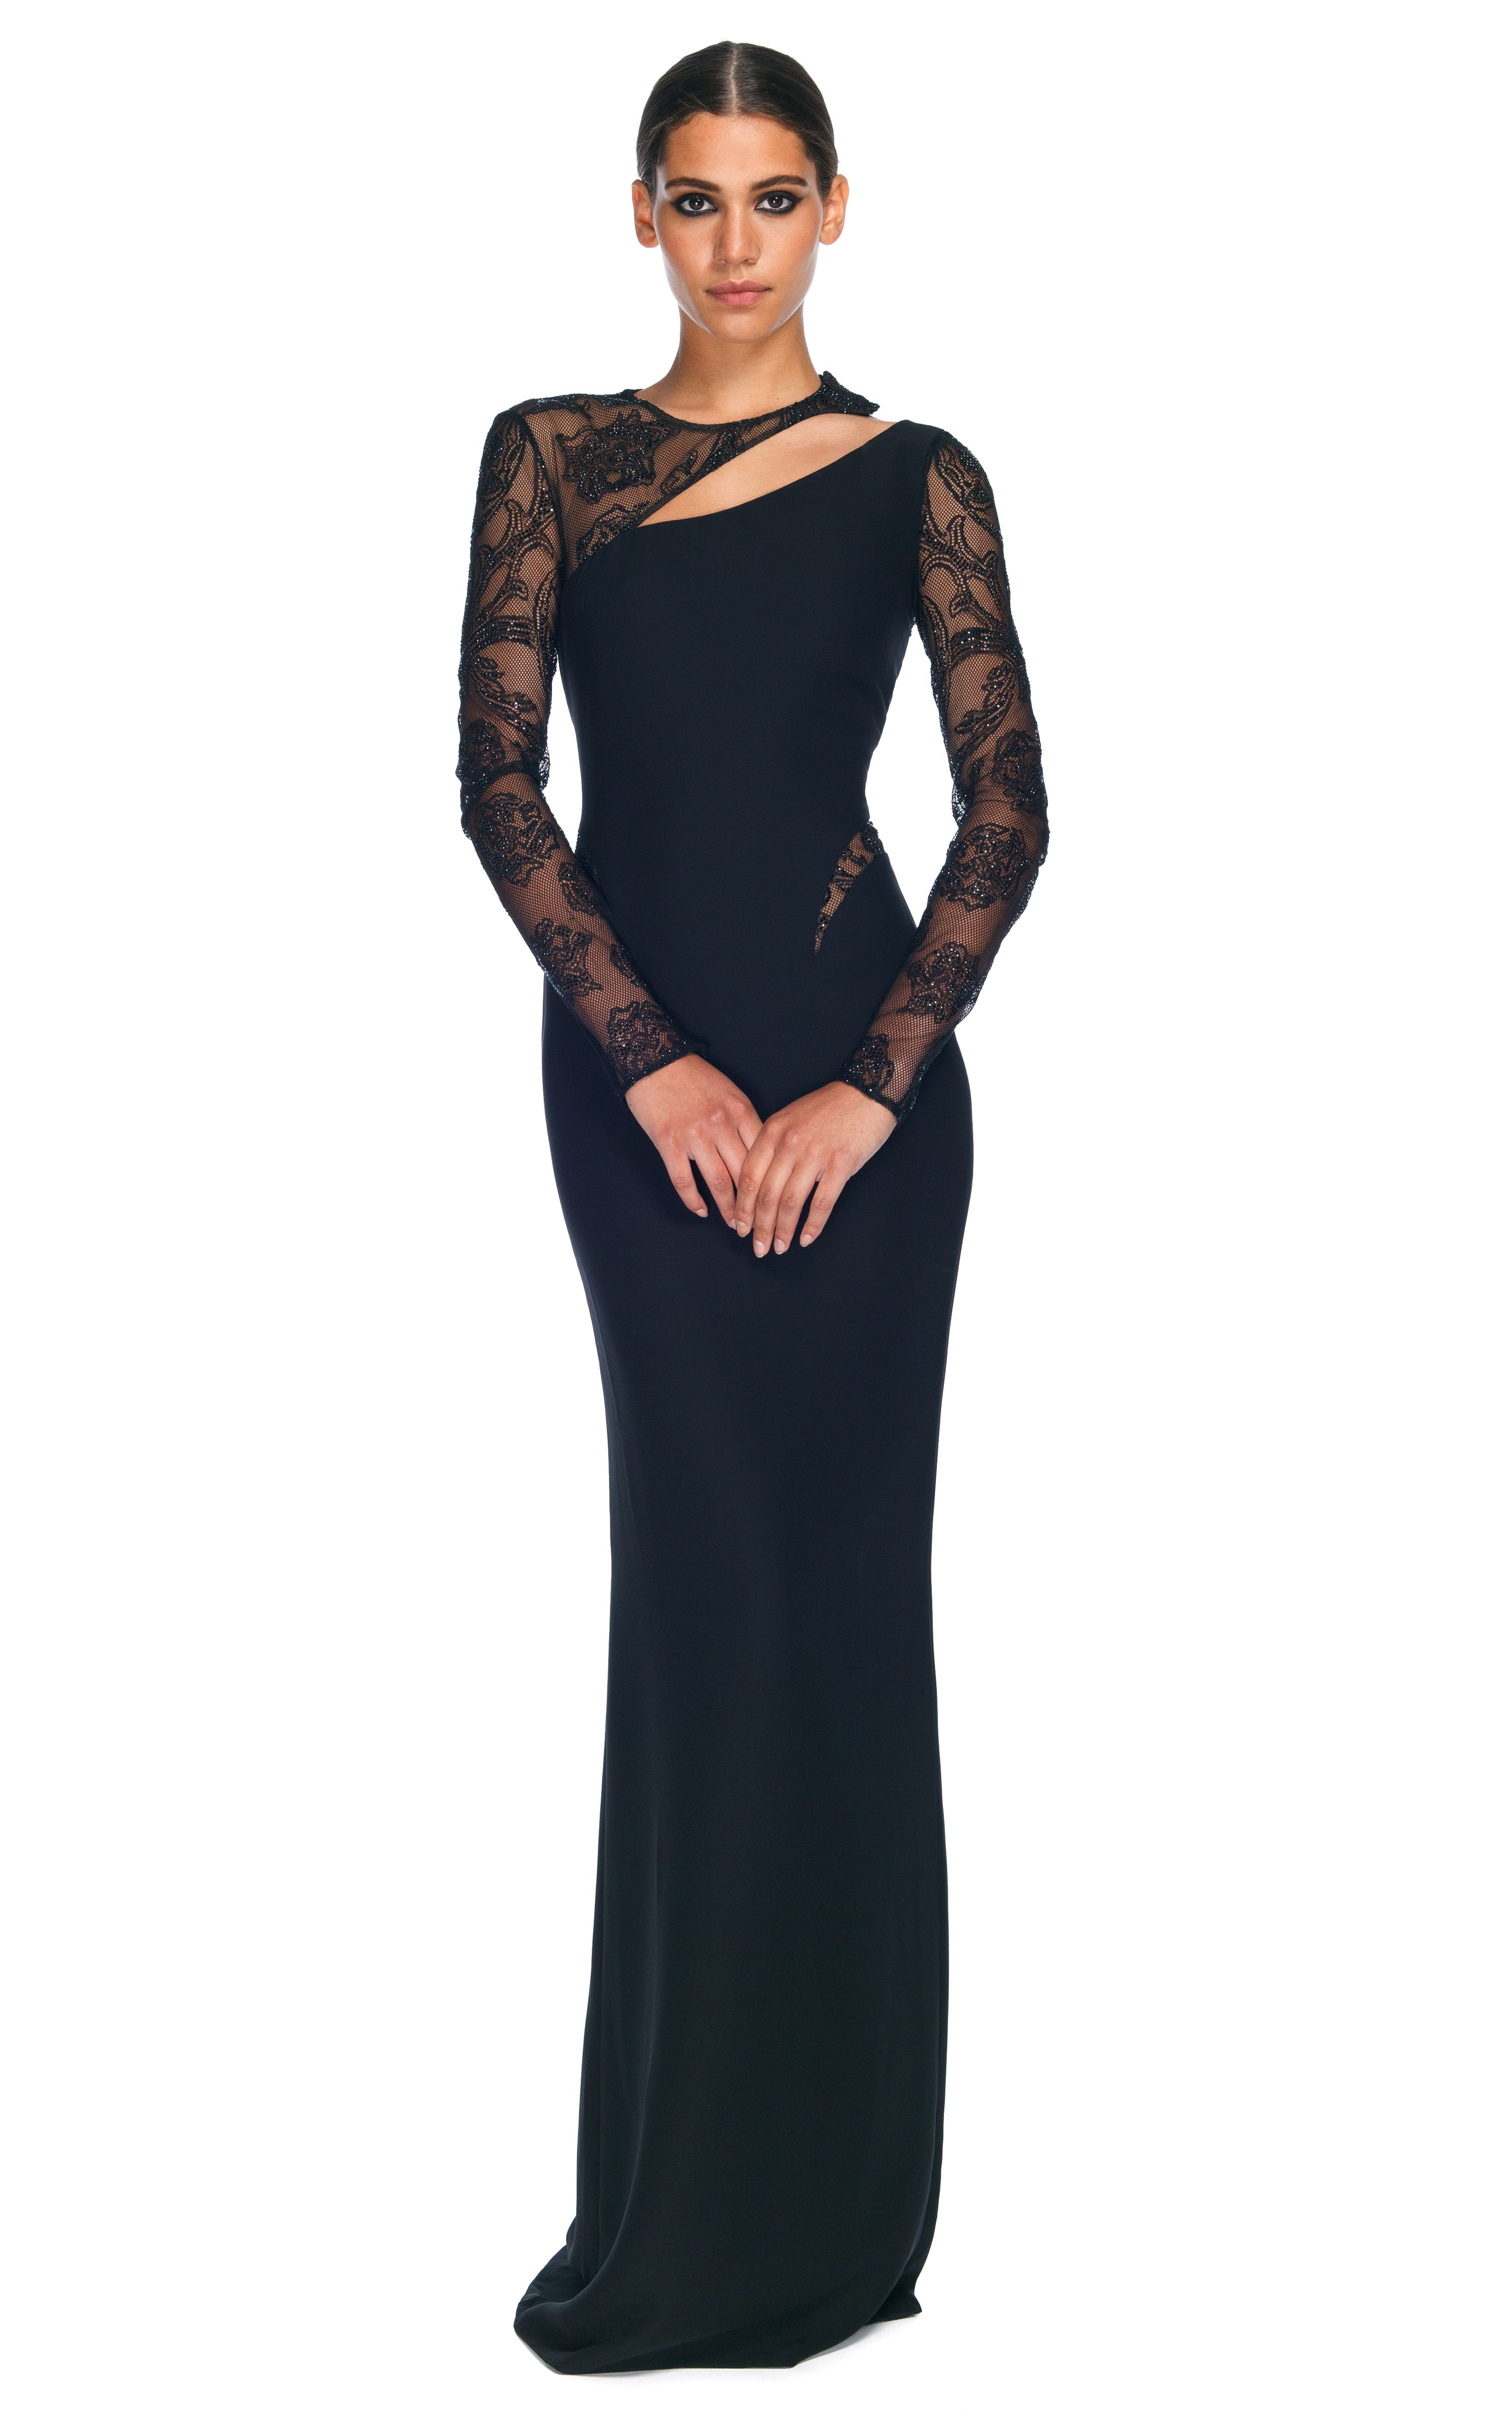 Versace Evening Gowns | Asymmetrical Cut Out Evening Gown by Versace ...